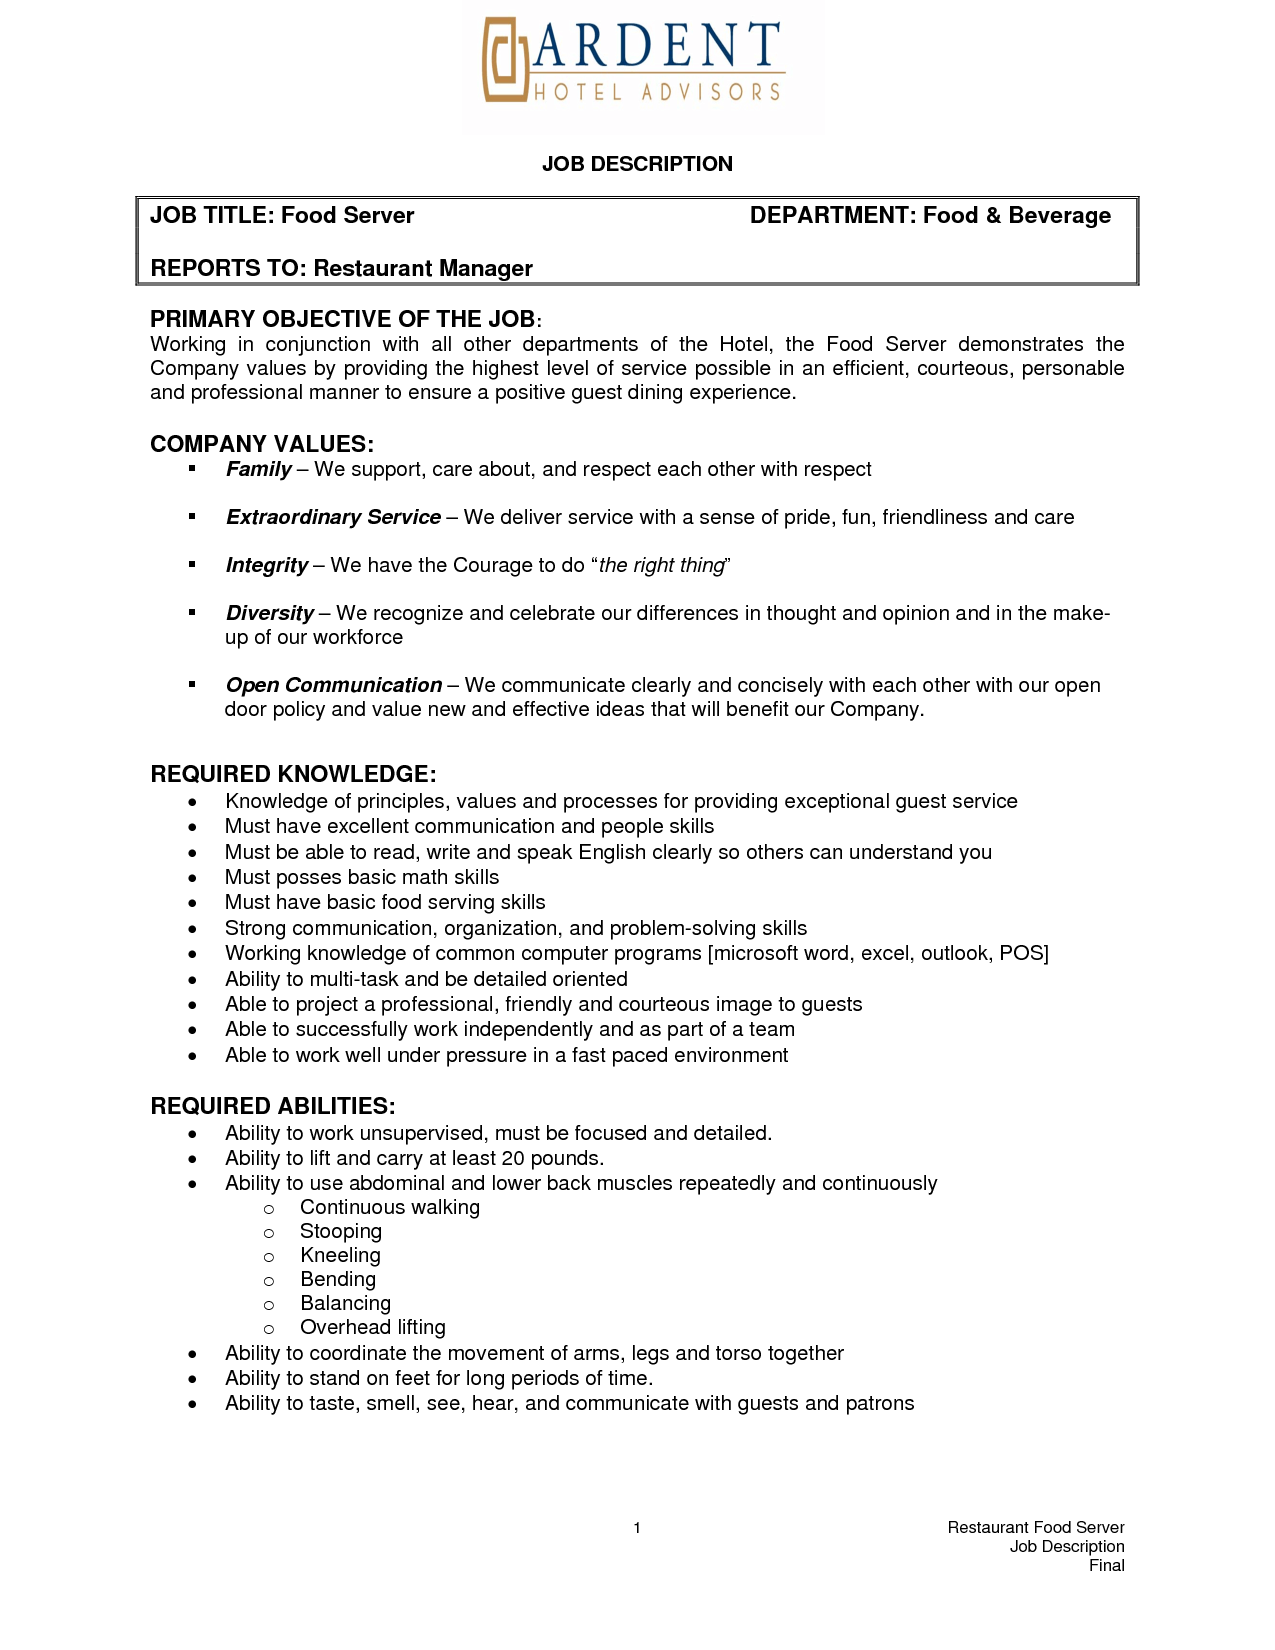 Resume Job Descriptions pusatkroto.Com